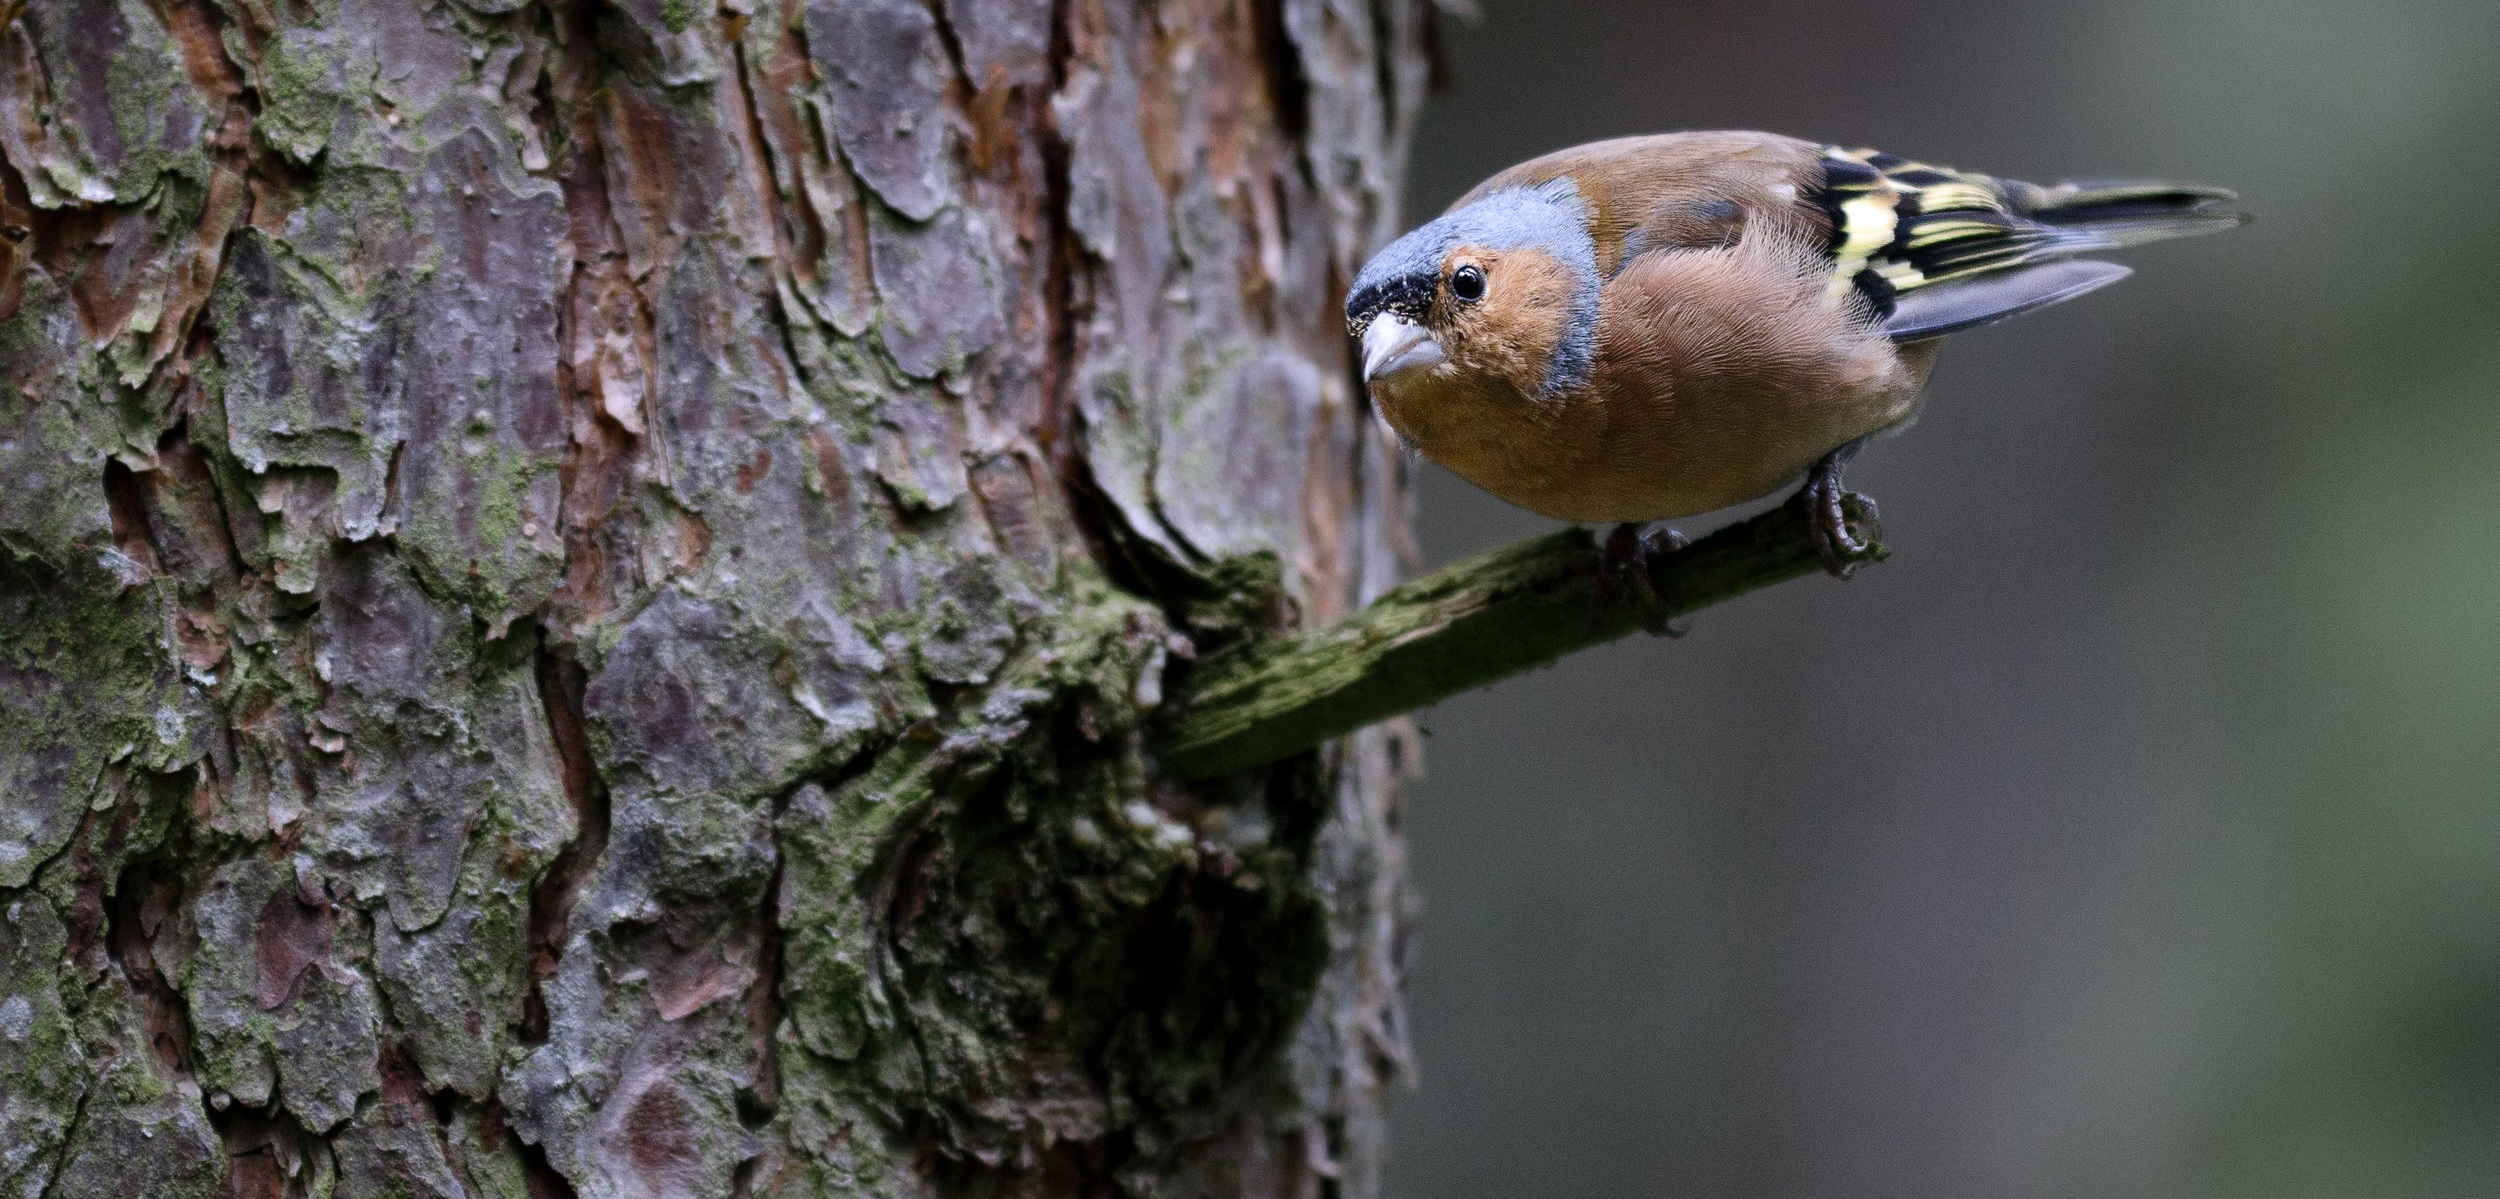 Common chaffinch (Fringilla coelebs) male perched on a branch, ready for take off at the Loch Garten Osprey Centre in Cairngorms National Park, Scotland.